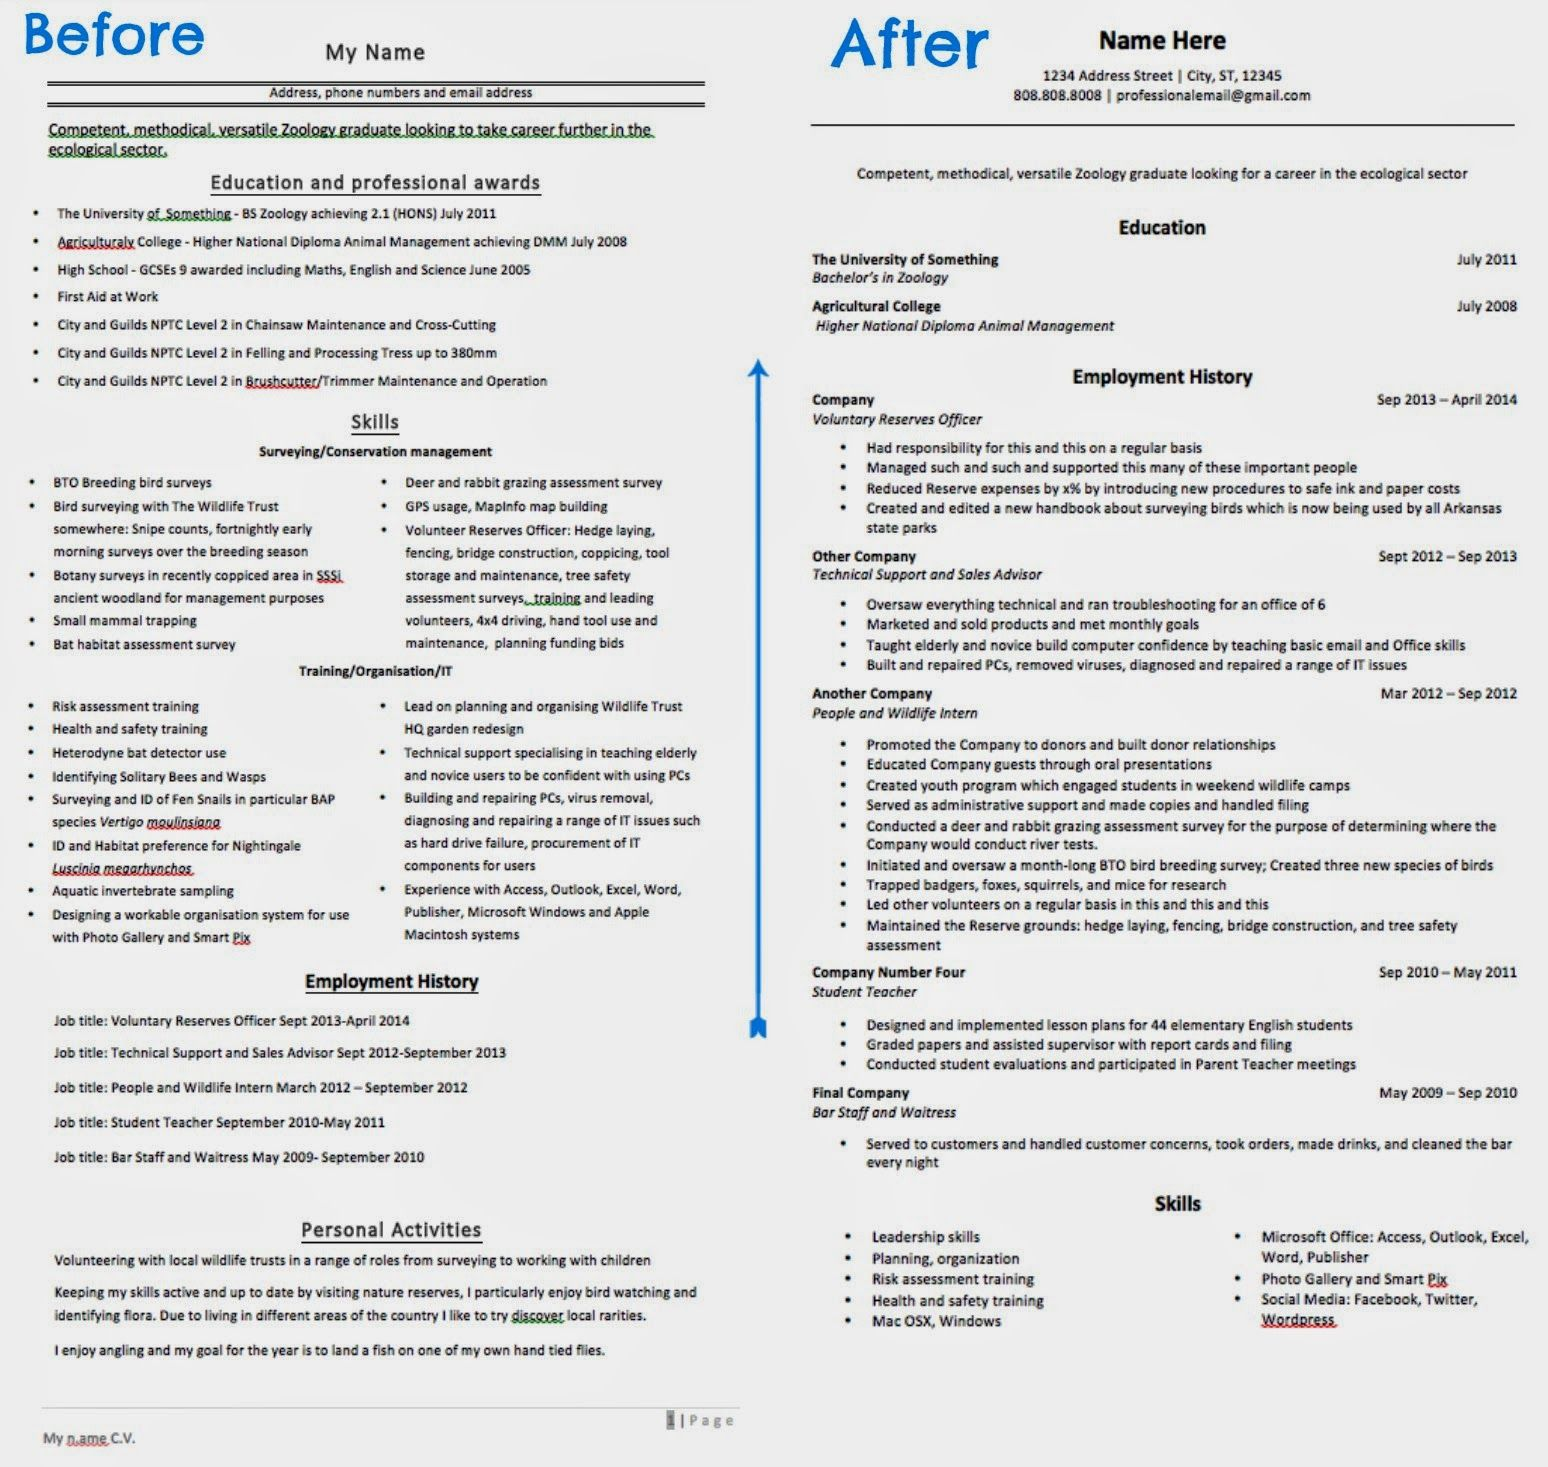 A resume, before and after Lindsay Eryn Posting